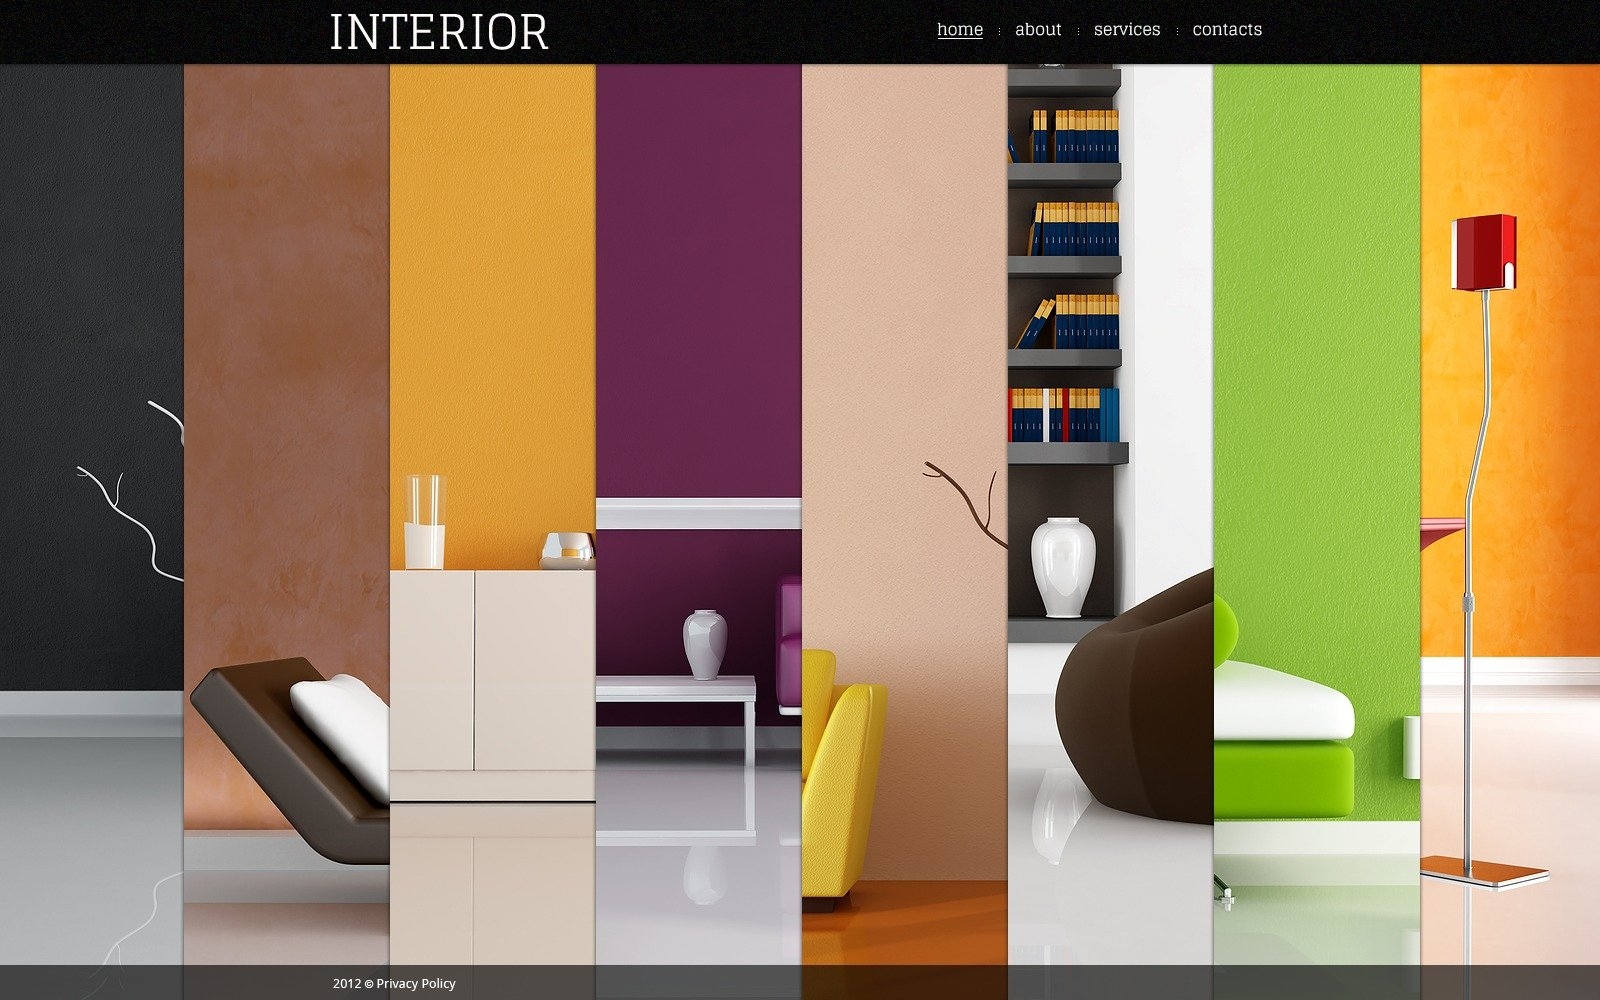 Interior design flash template 40372 for About us content for interior design company